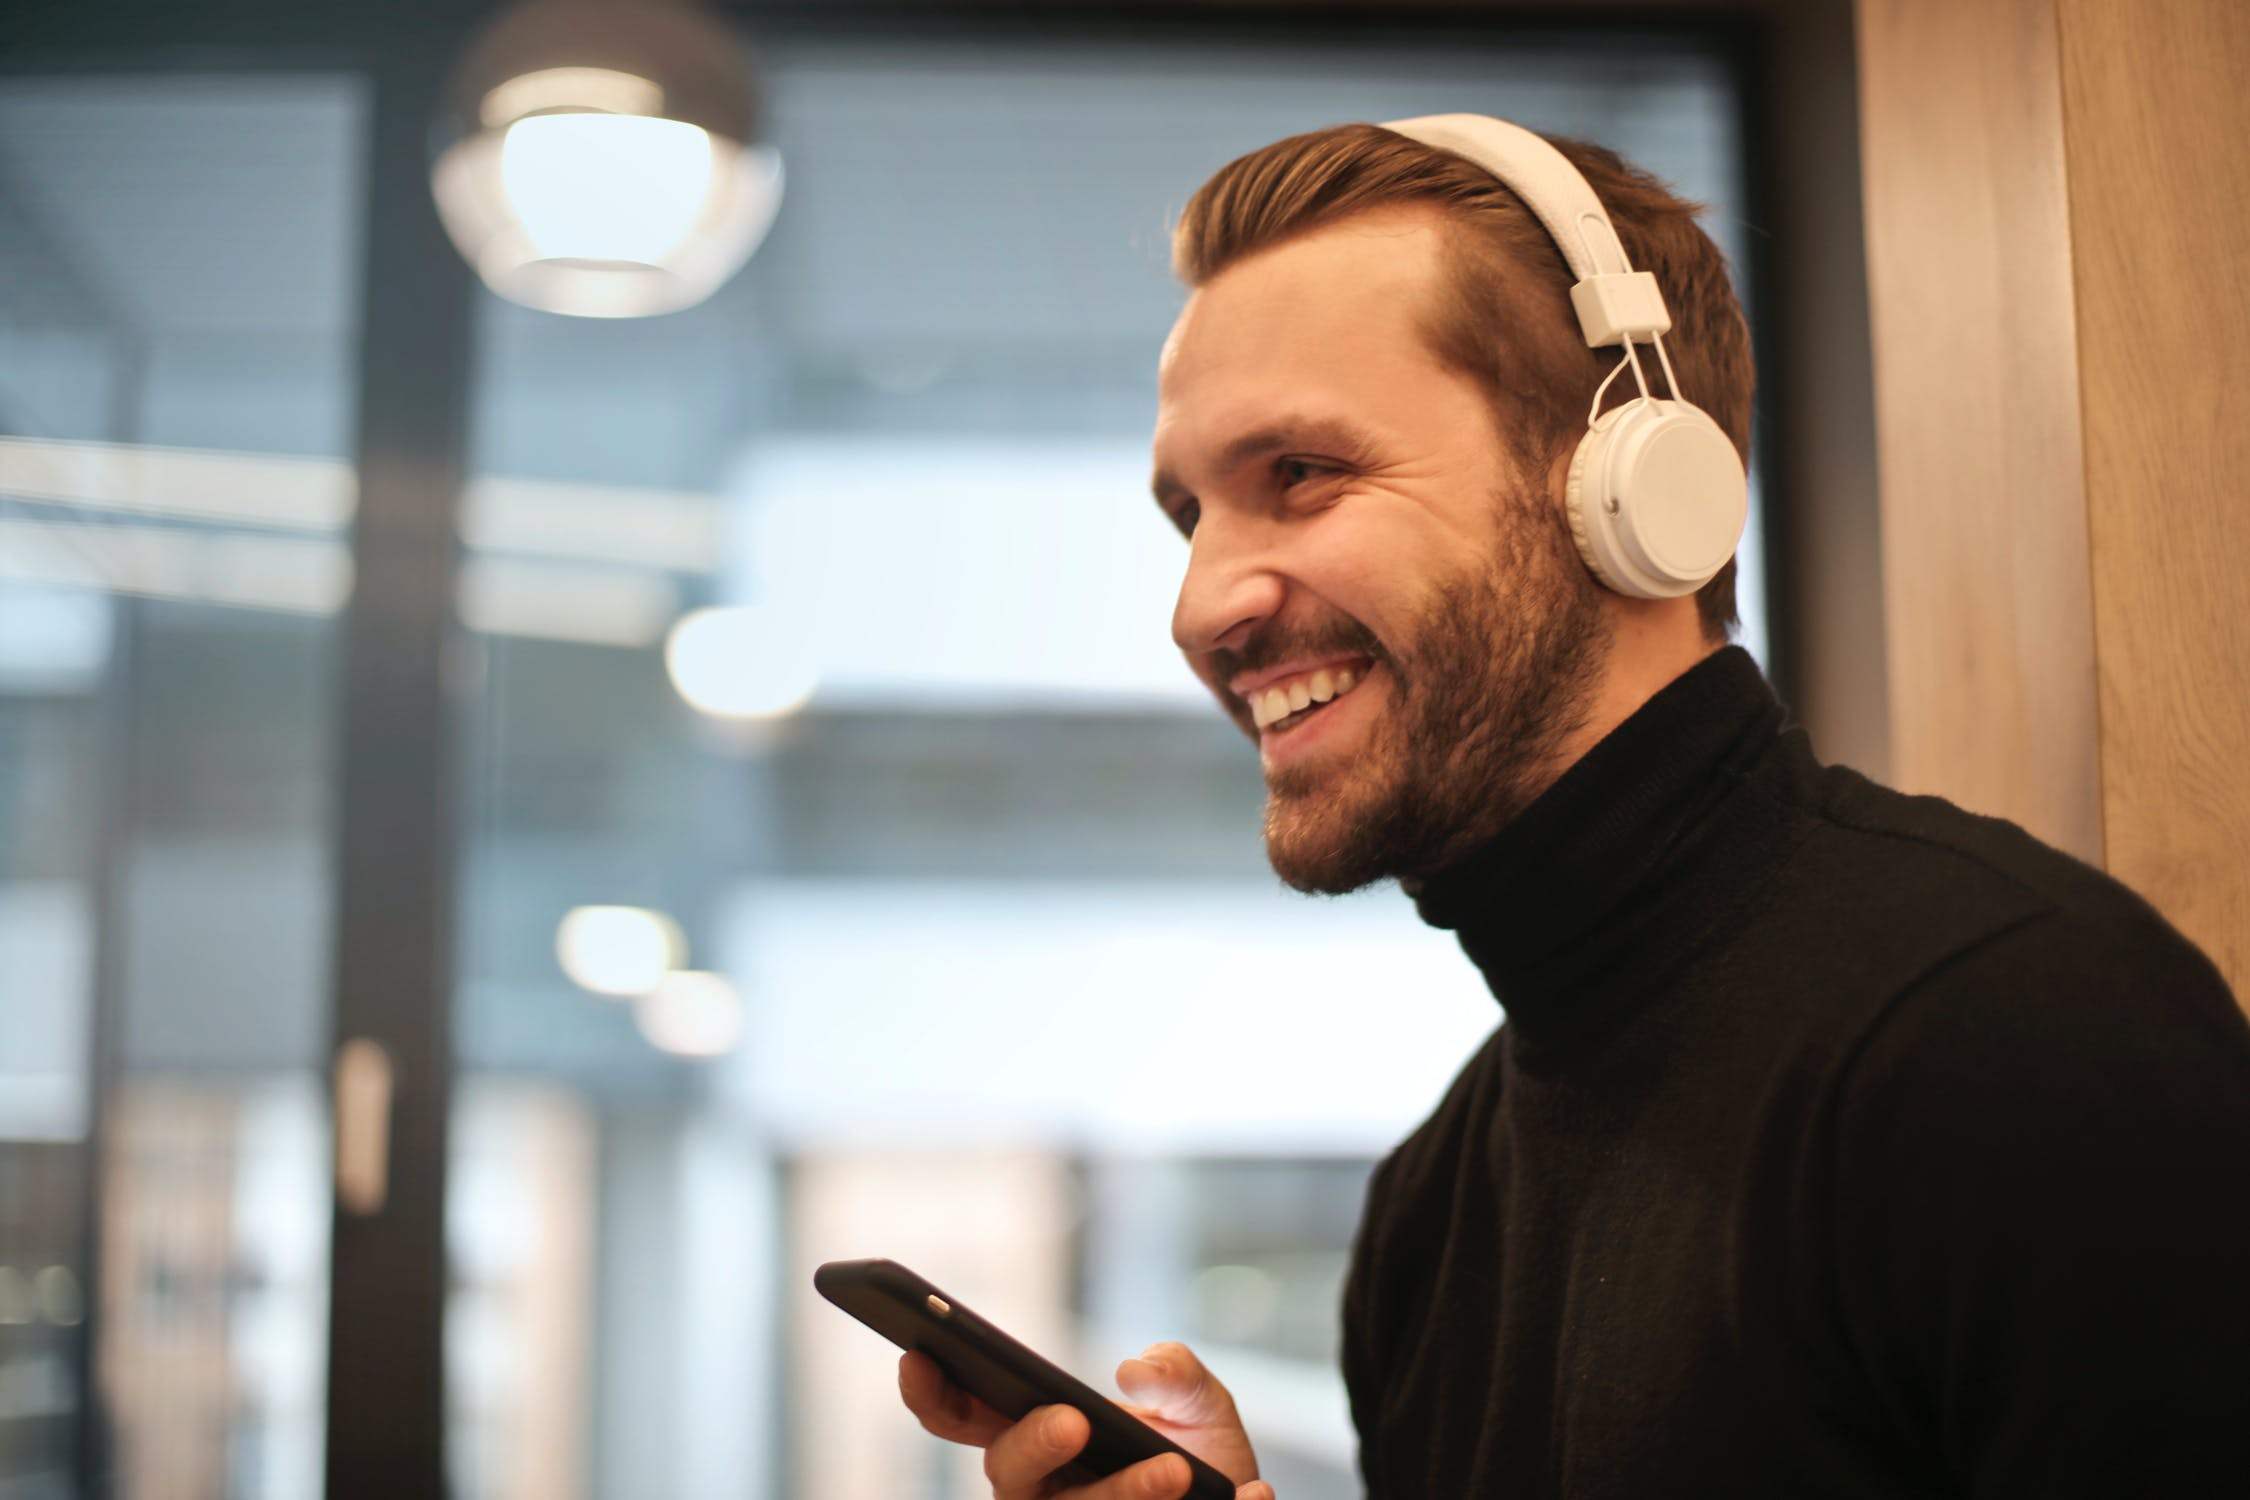 A man smiling while listening to a recovery podcast